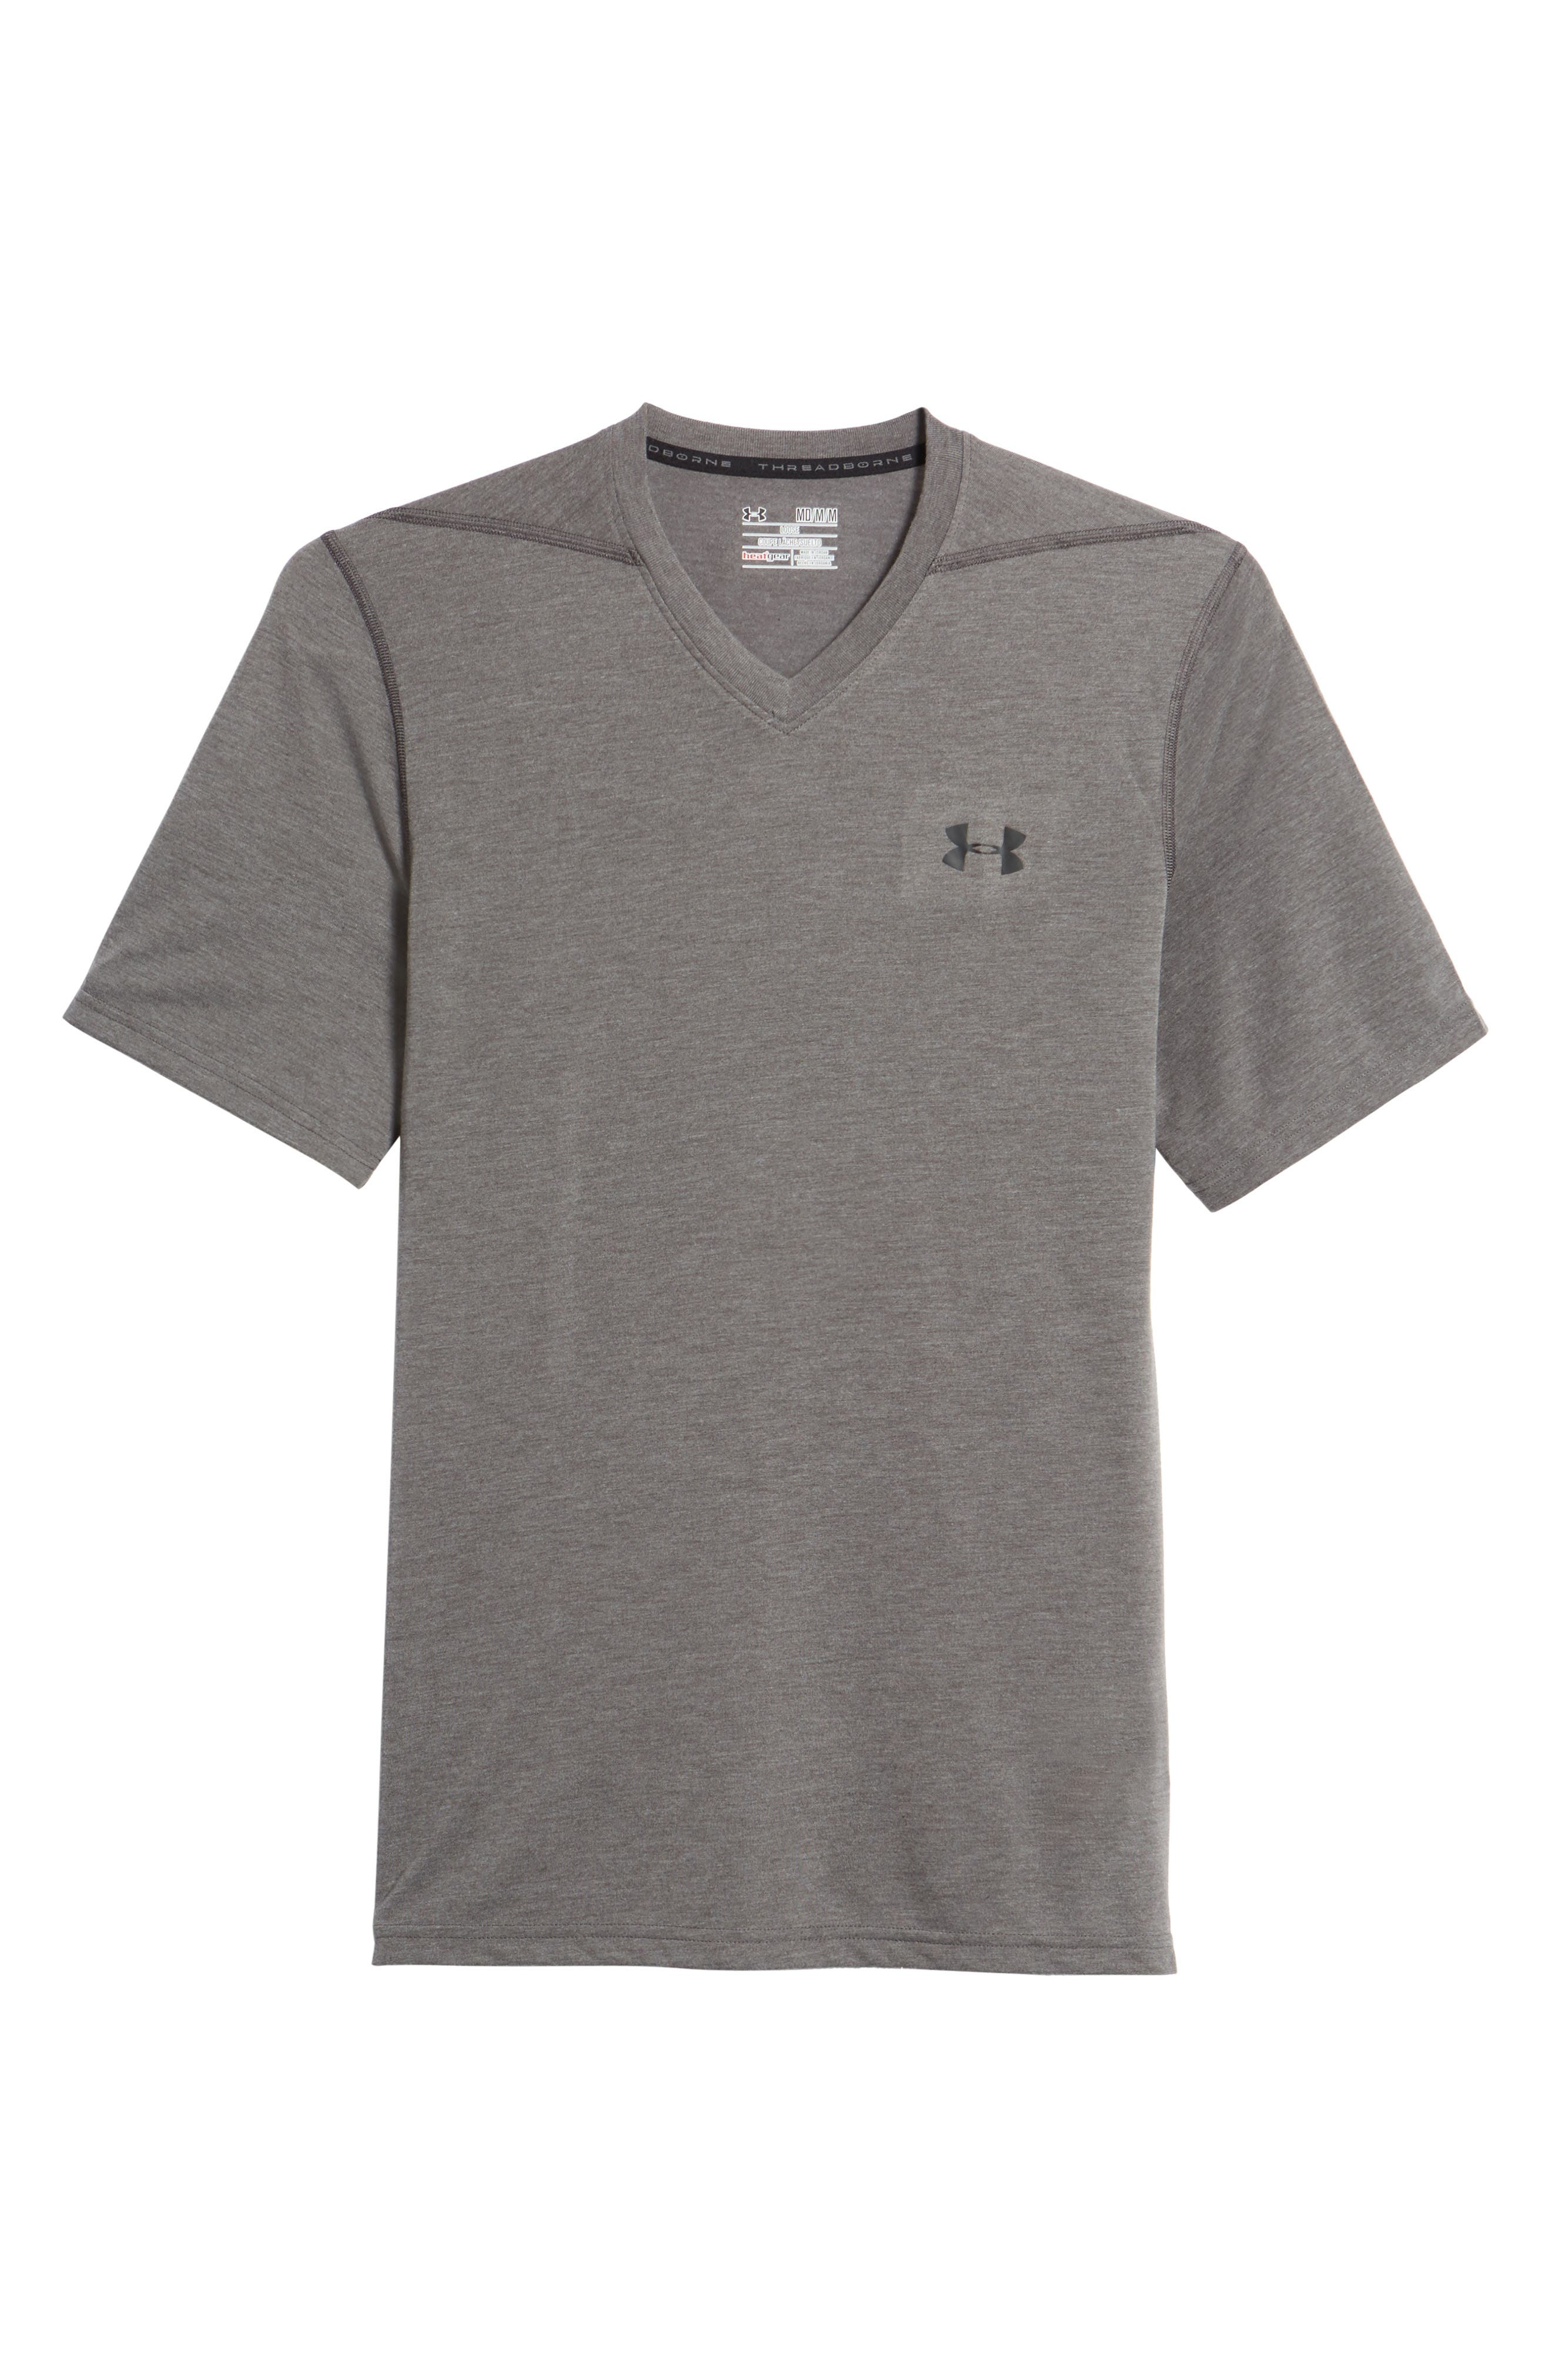 Regular Fit Threadborne T-Shirt,                             Main thumbnail 1, color,                             Carbon Heather